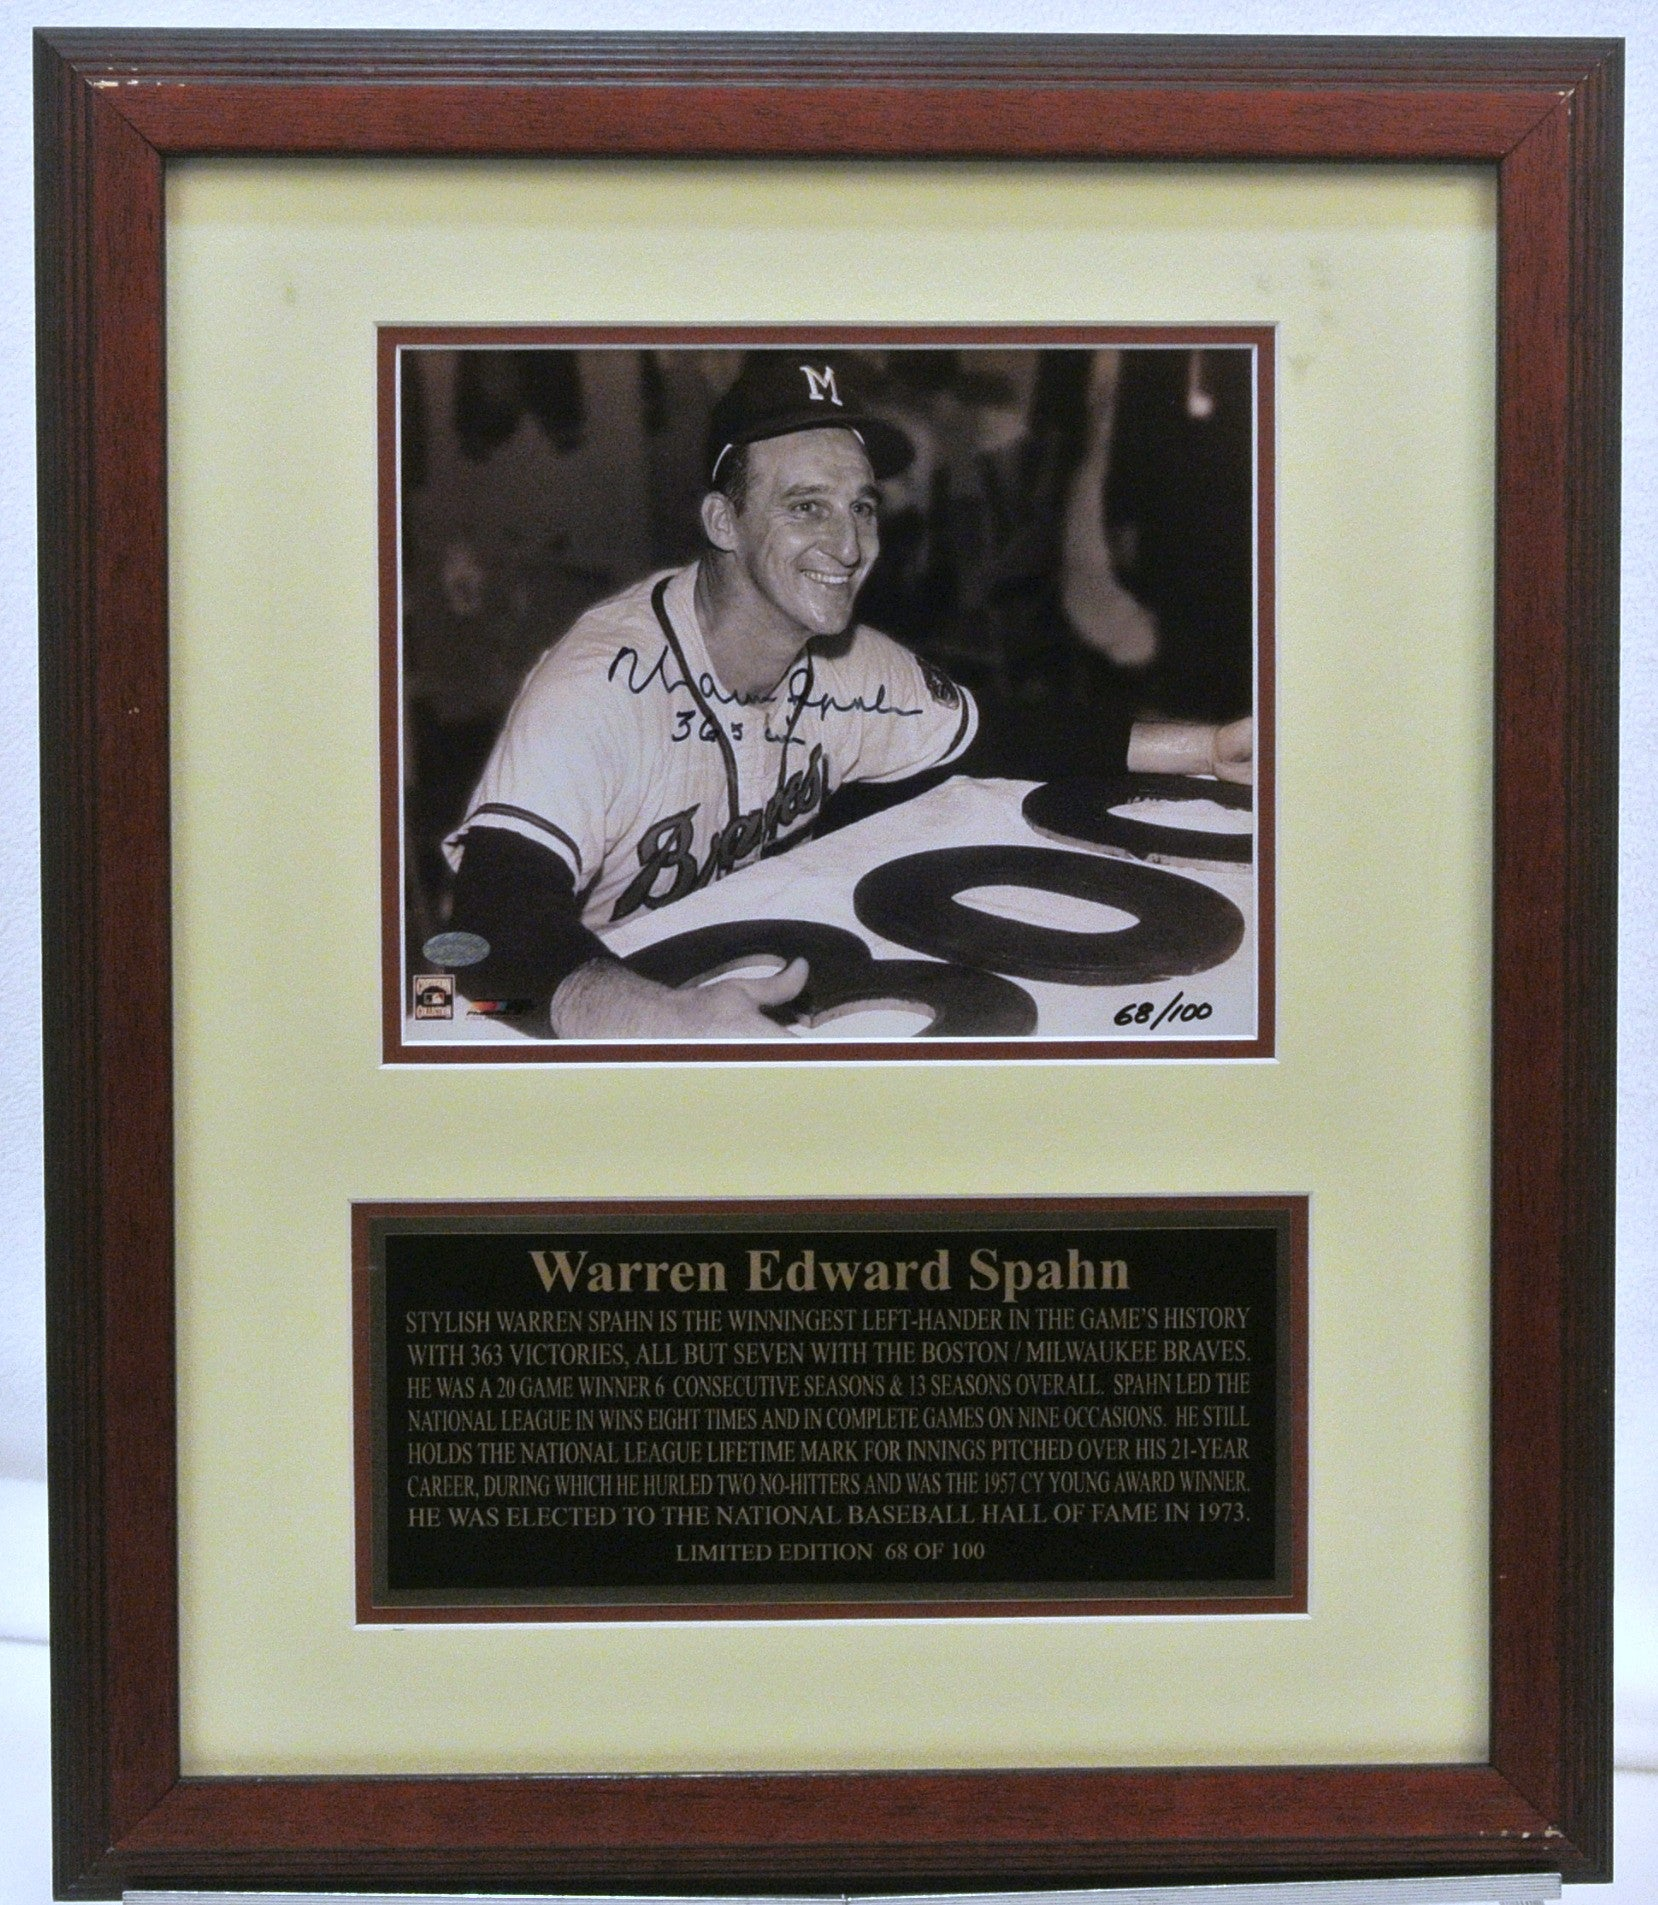 Warren Edward Spahn Photo Braves